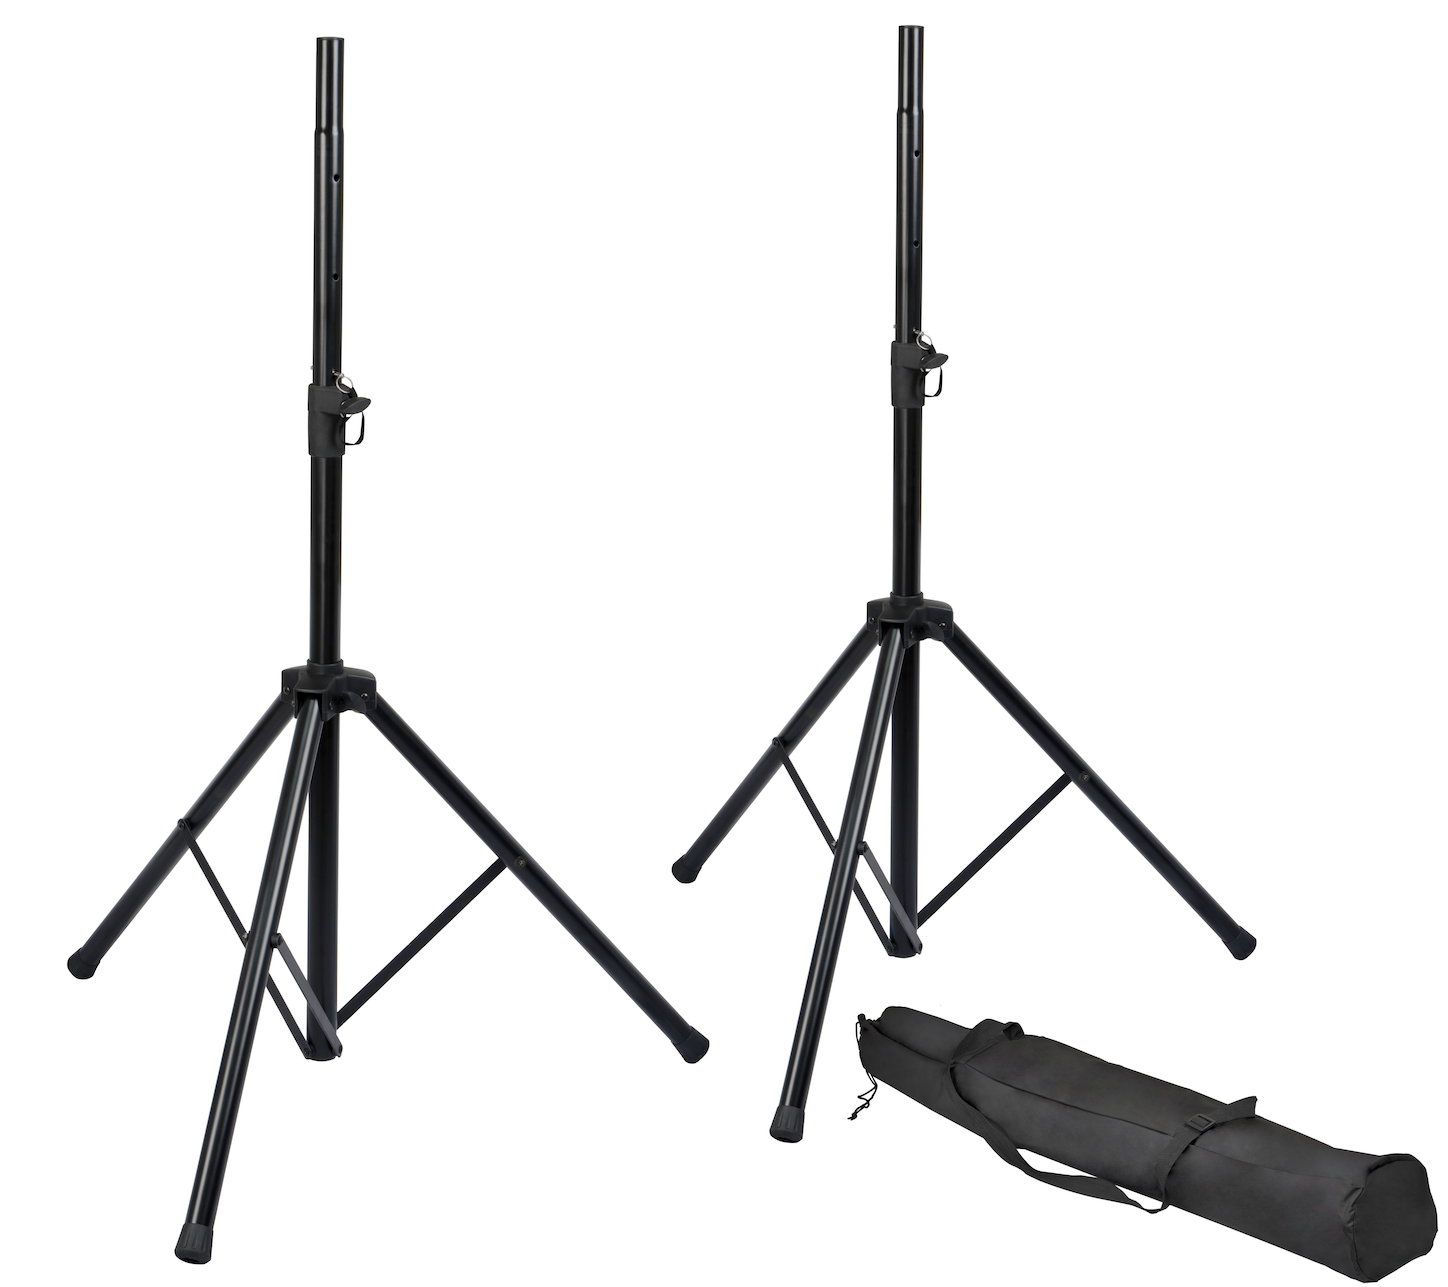 Gator ROK-IT speaker stand set with carry bag